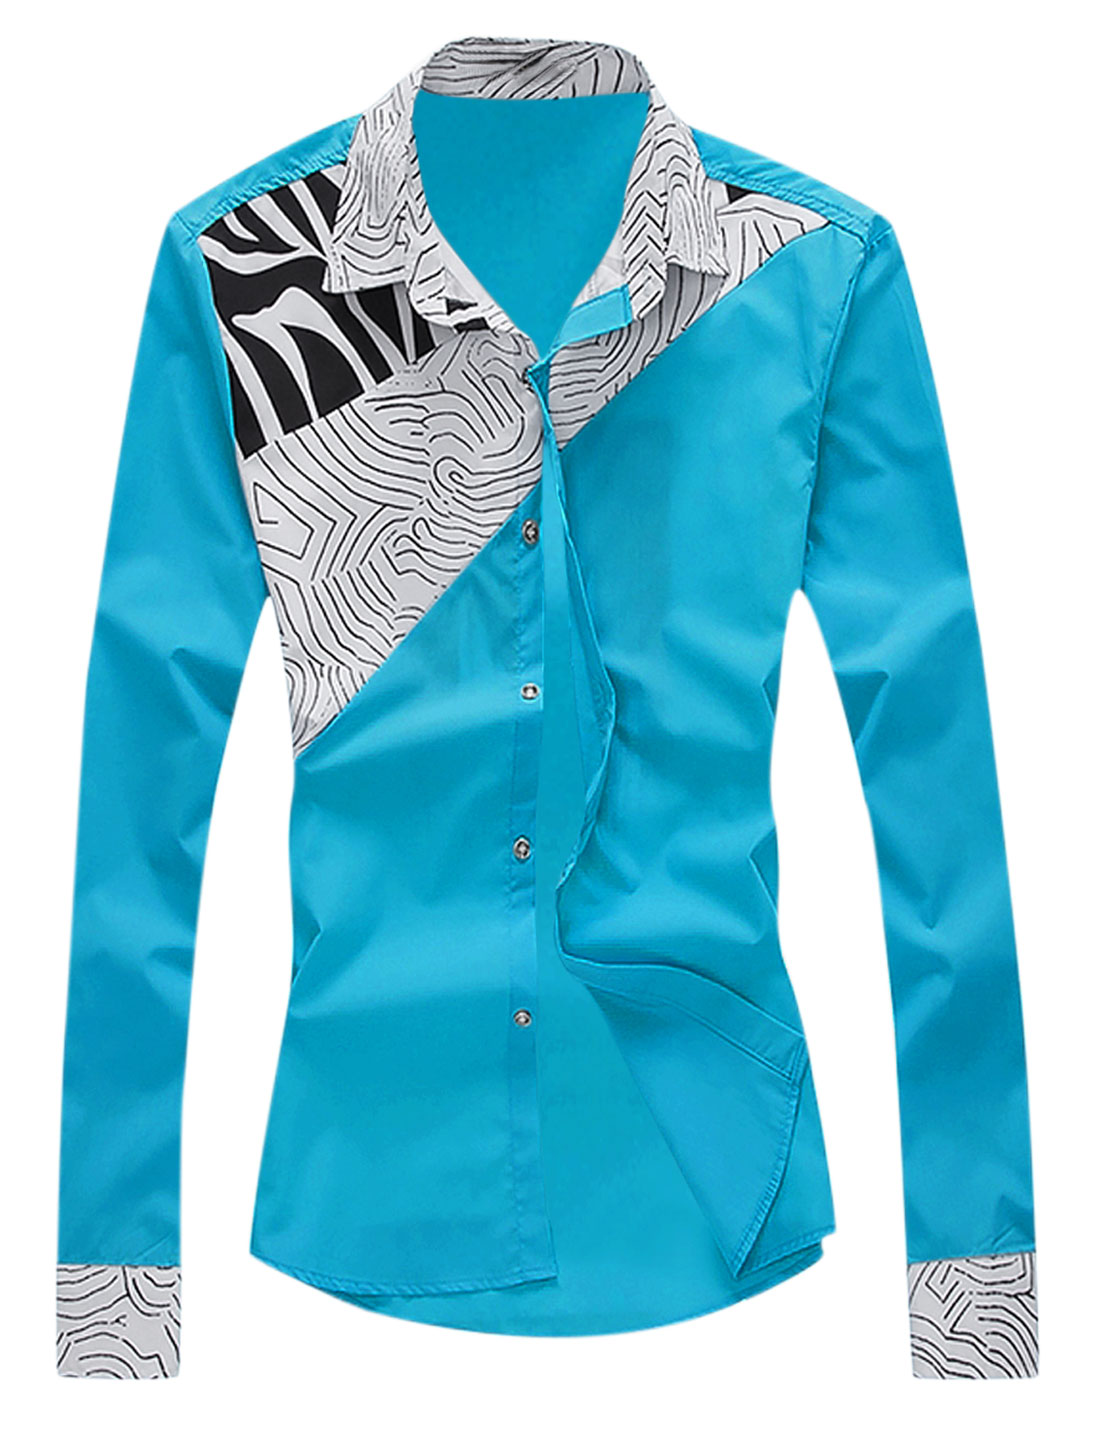 Men Long Sleeve Novelty Prints Button Down Shirt Turquoise M